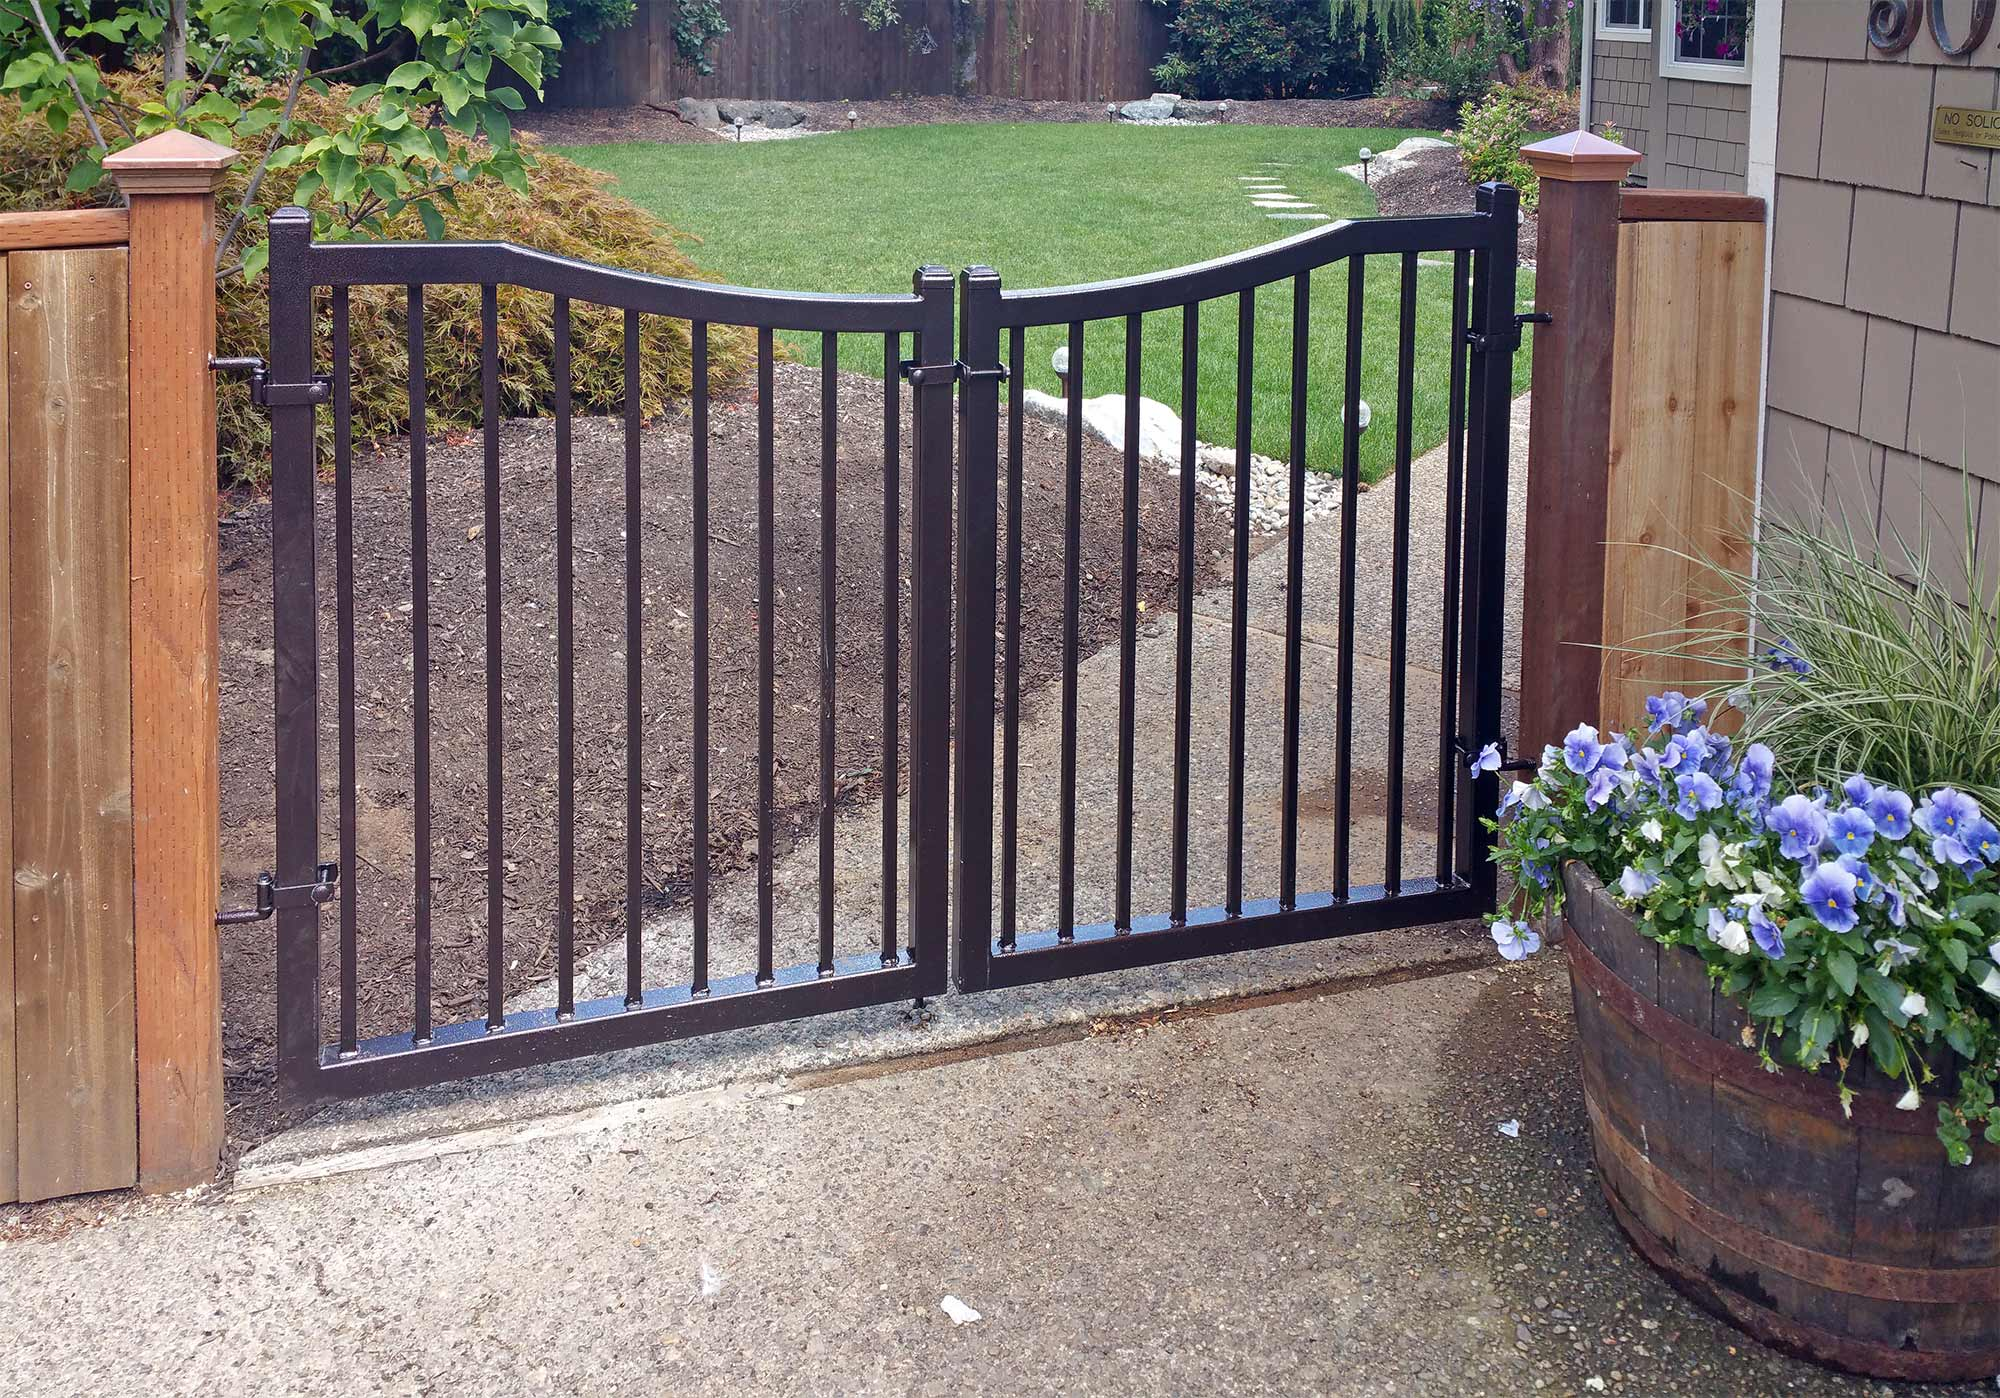 Ornamental iron access gate, powder coated with hammered copper finish. Point to the image to see how it looked before. Click the image to see a larger view.